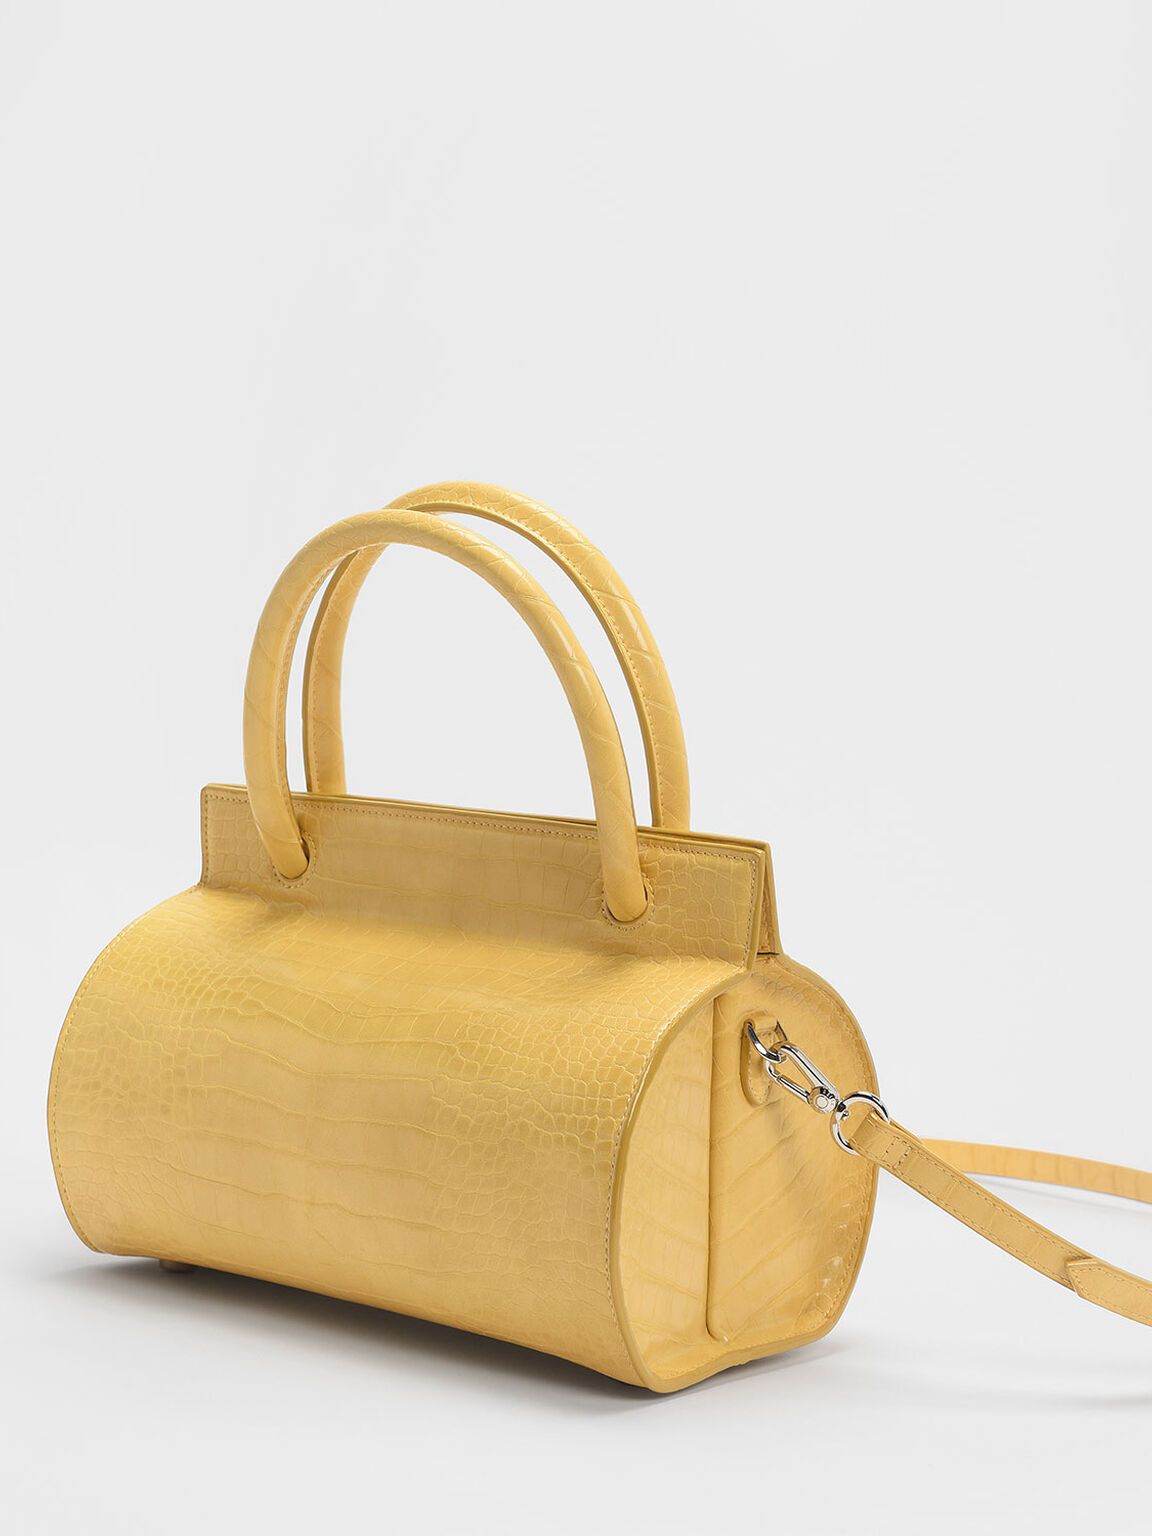 Croc-Effect Double Top Handle Structured Bag, Yellow, hi-res